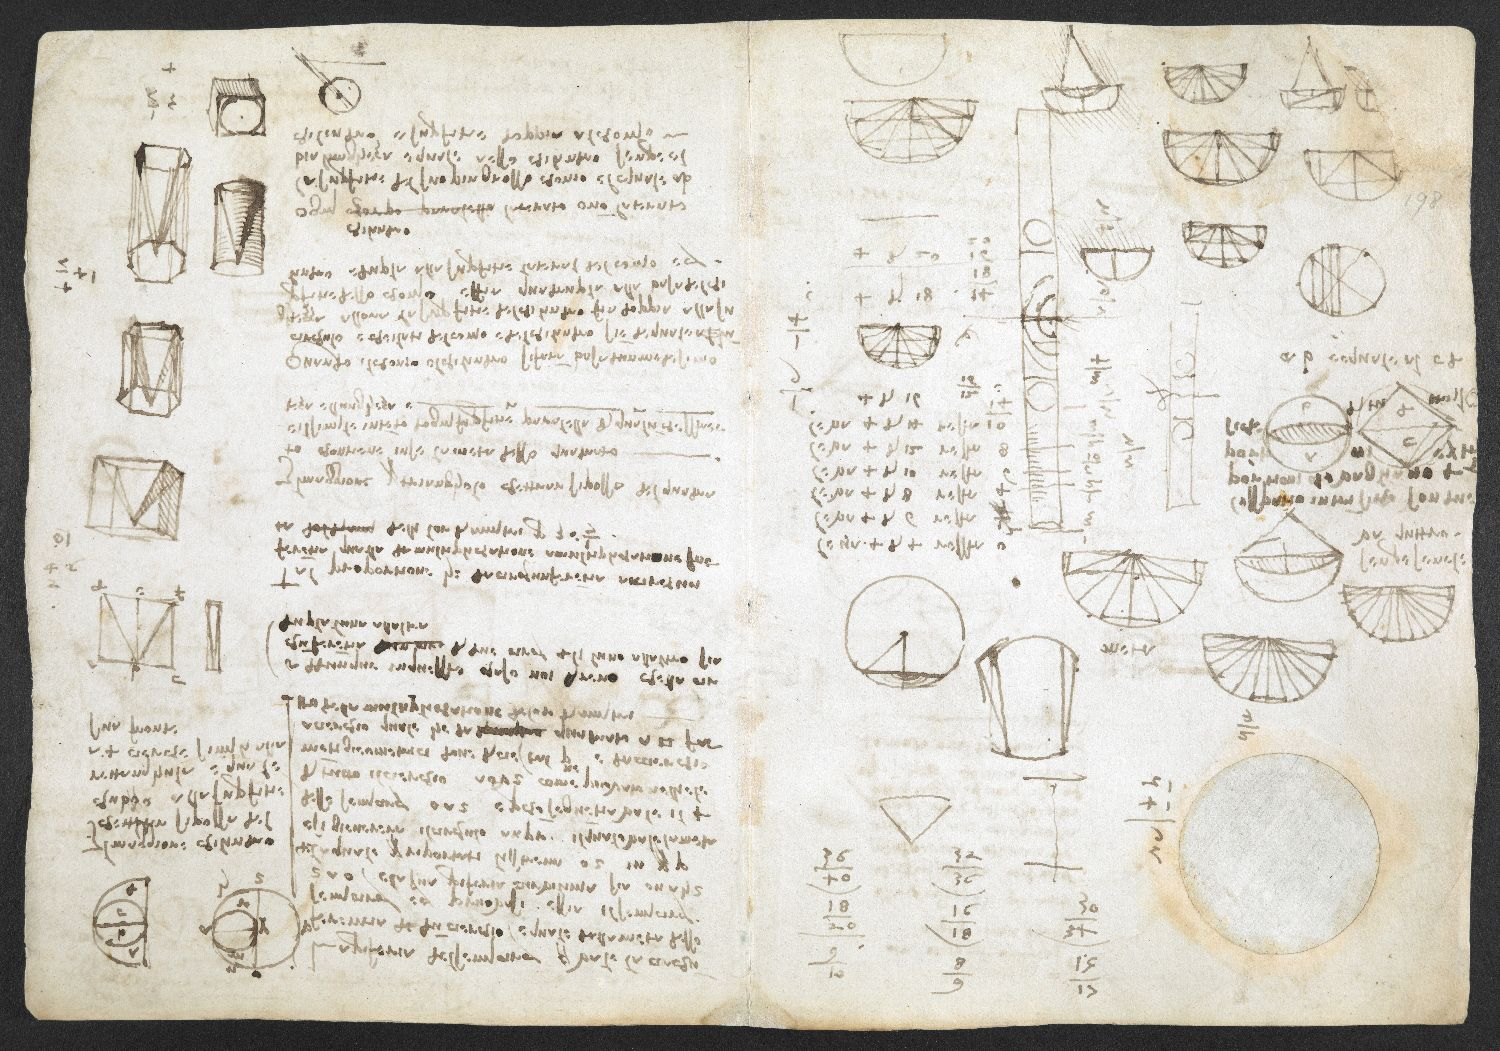 f. 198, displayed as an open bifolium with f. 197v: diagrams